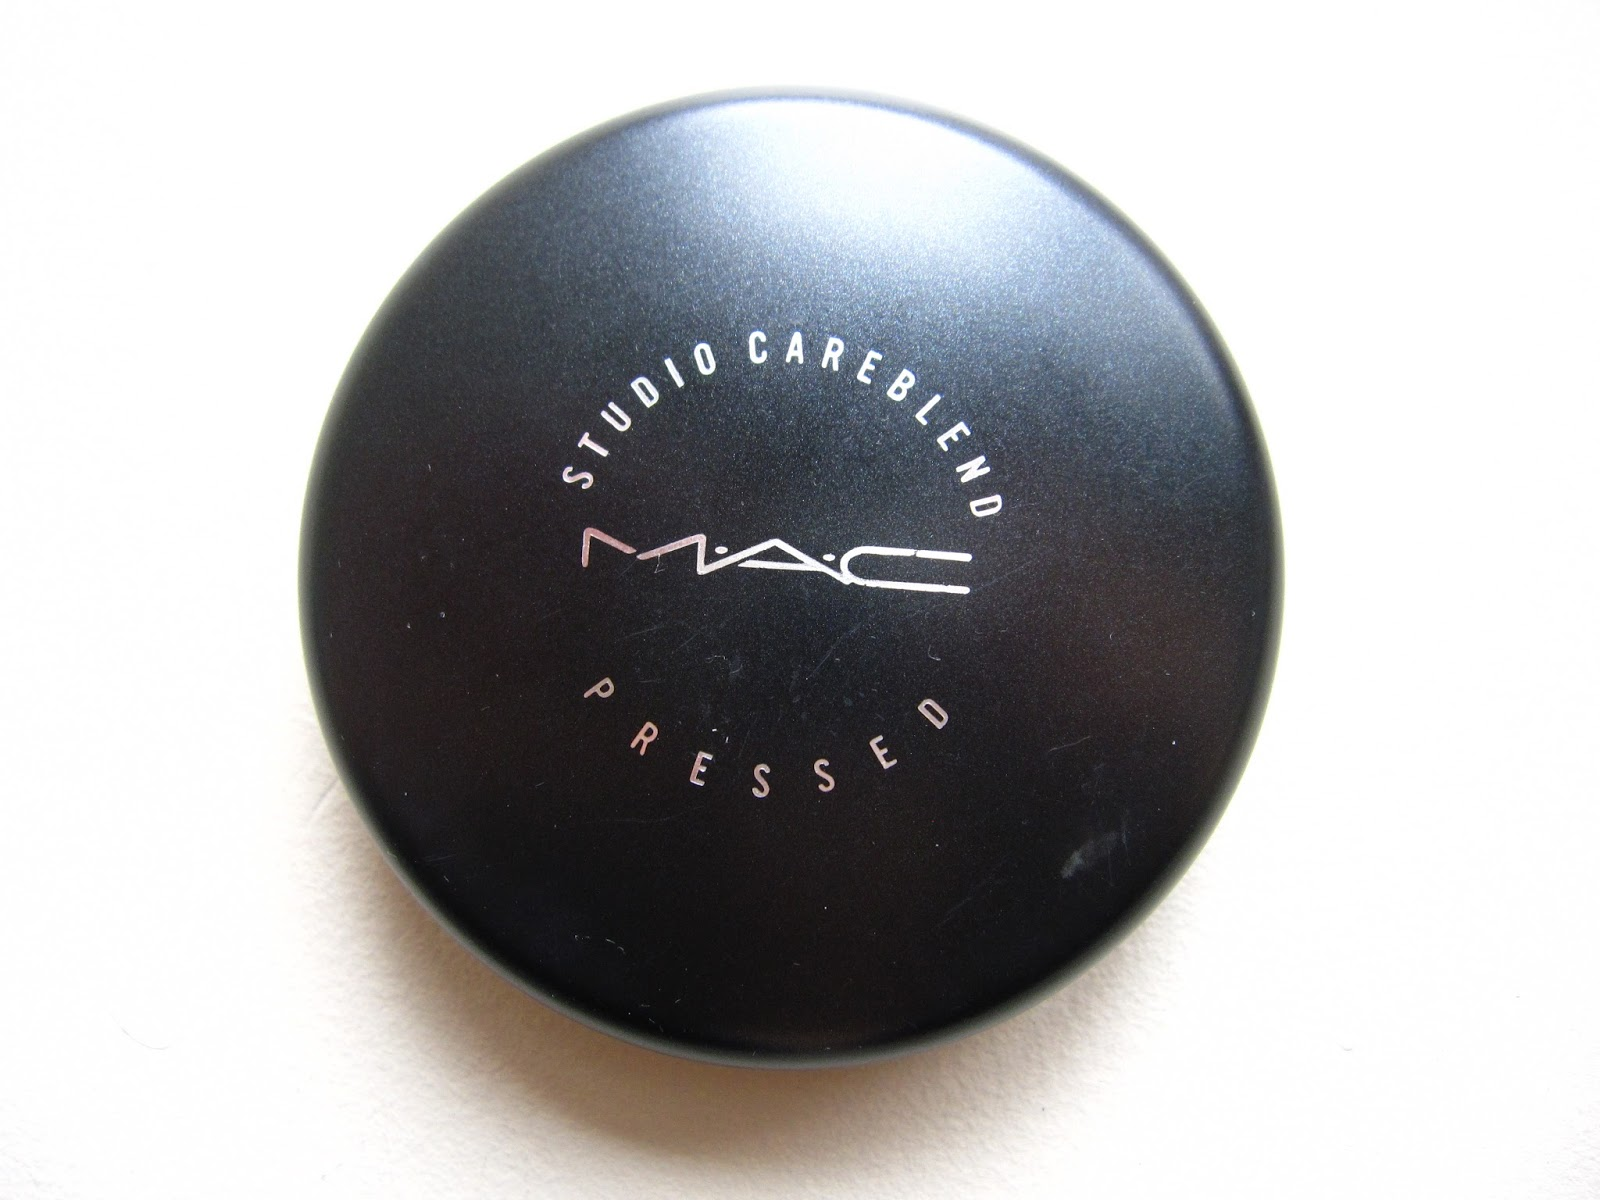 MAC studio careblend pressed powder review light plus